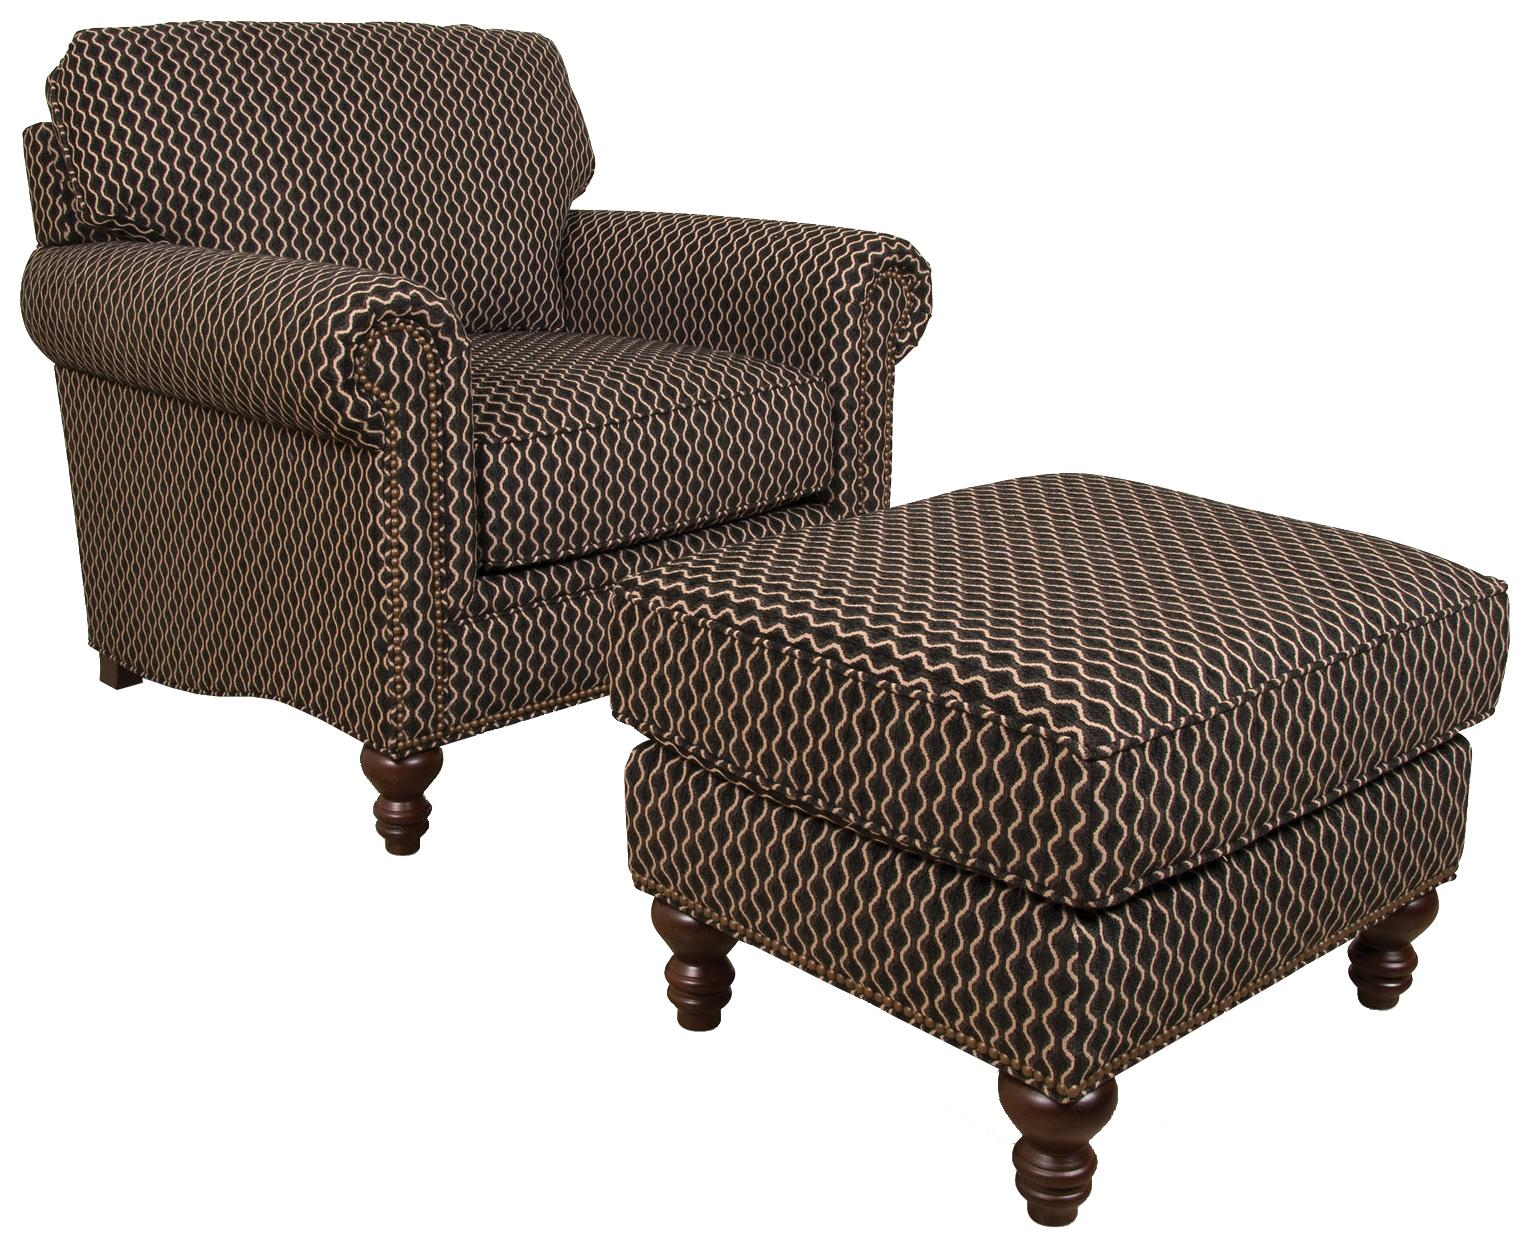 England Telisa  Living Room Chair and Ottoman - Item Number: 5834+7